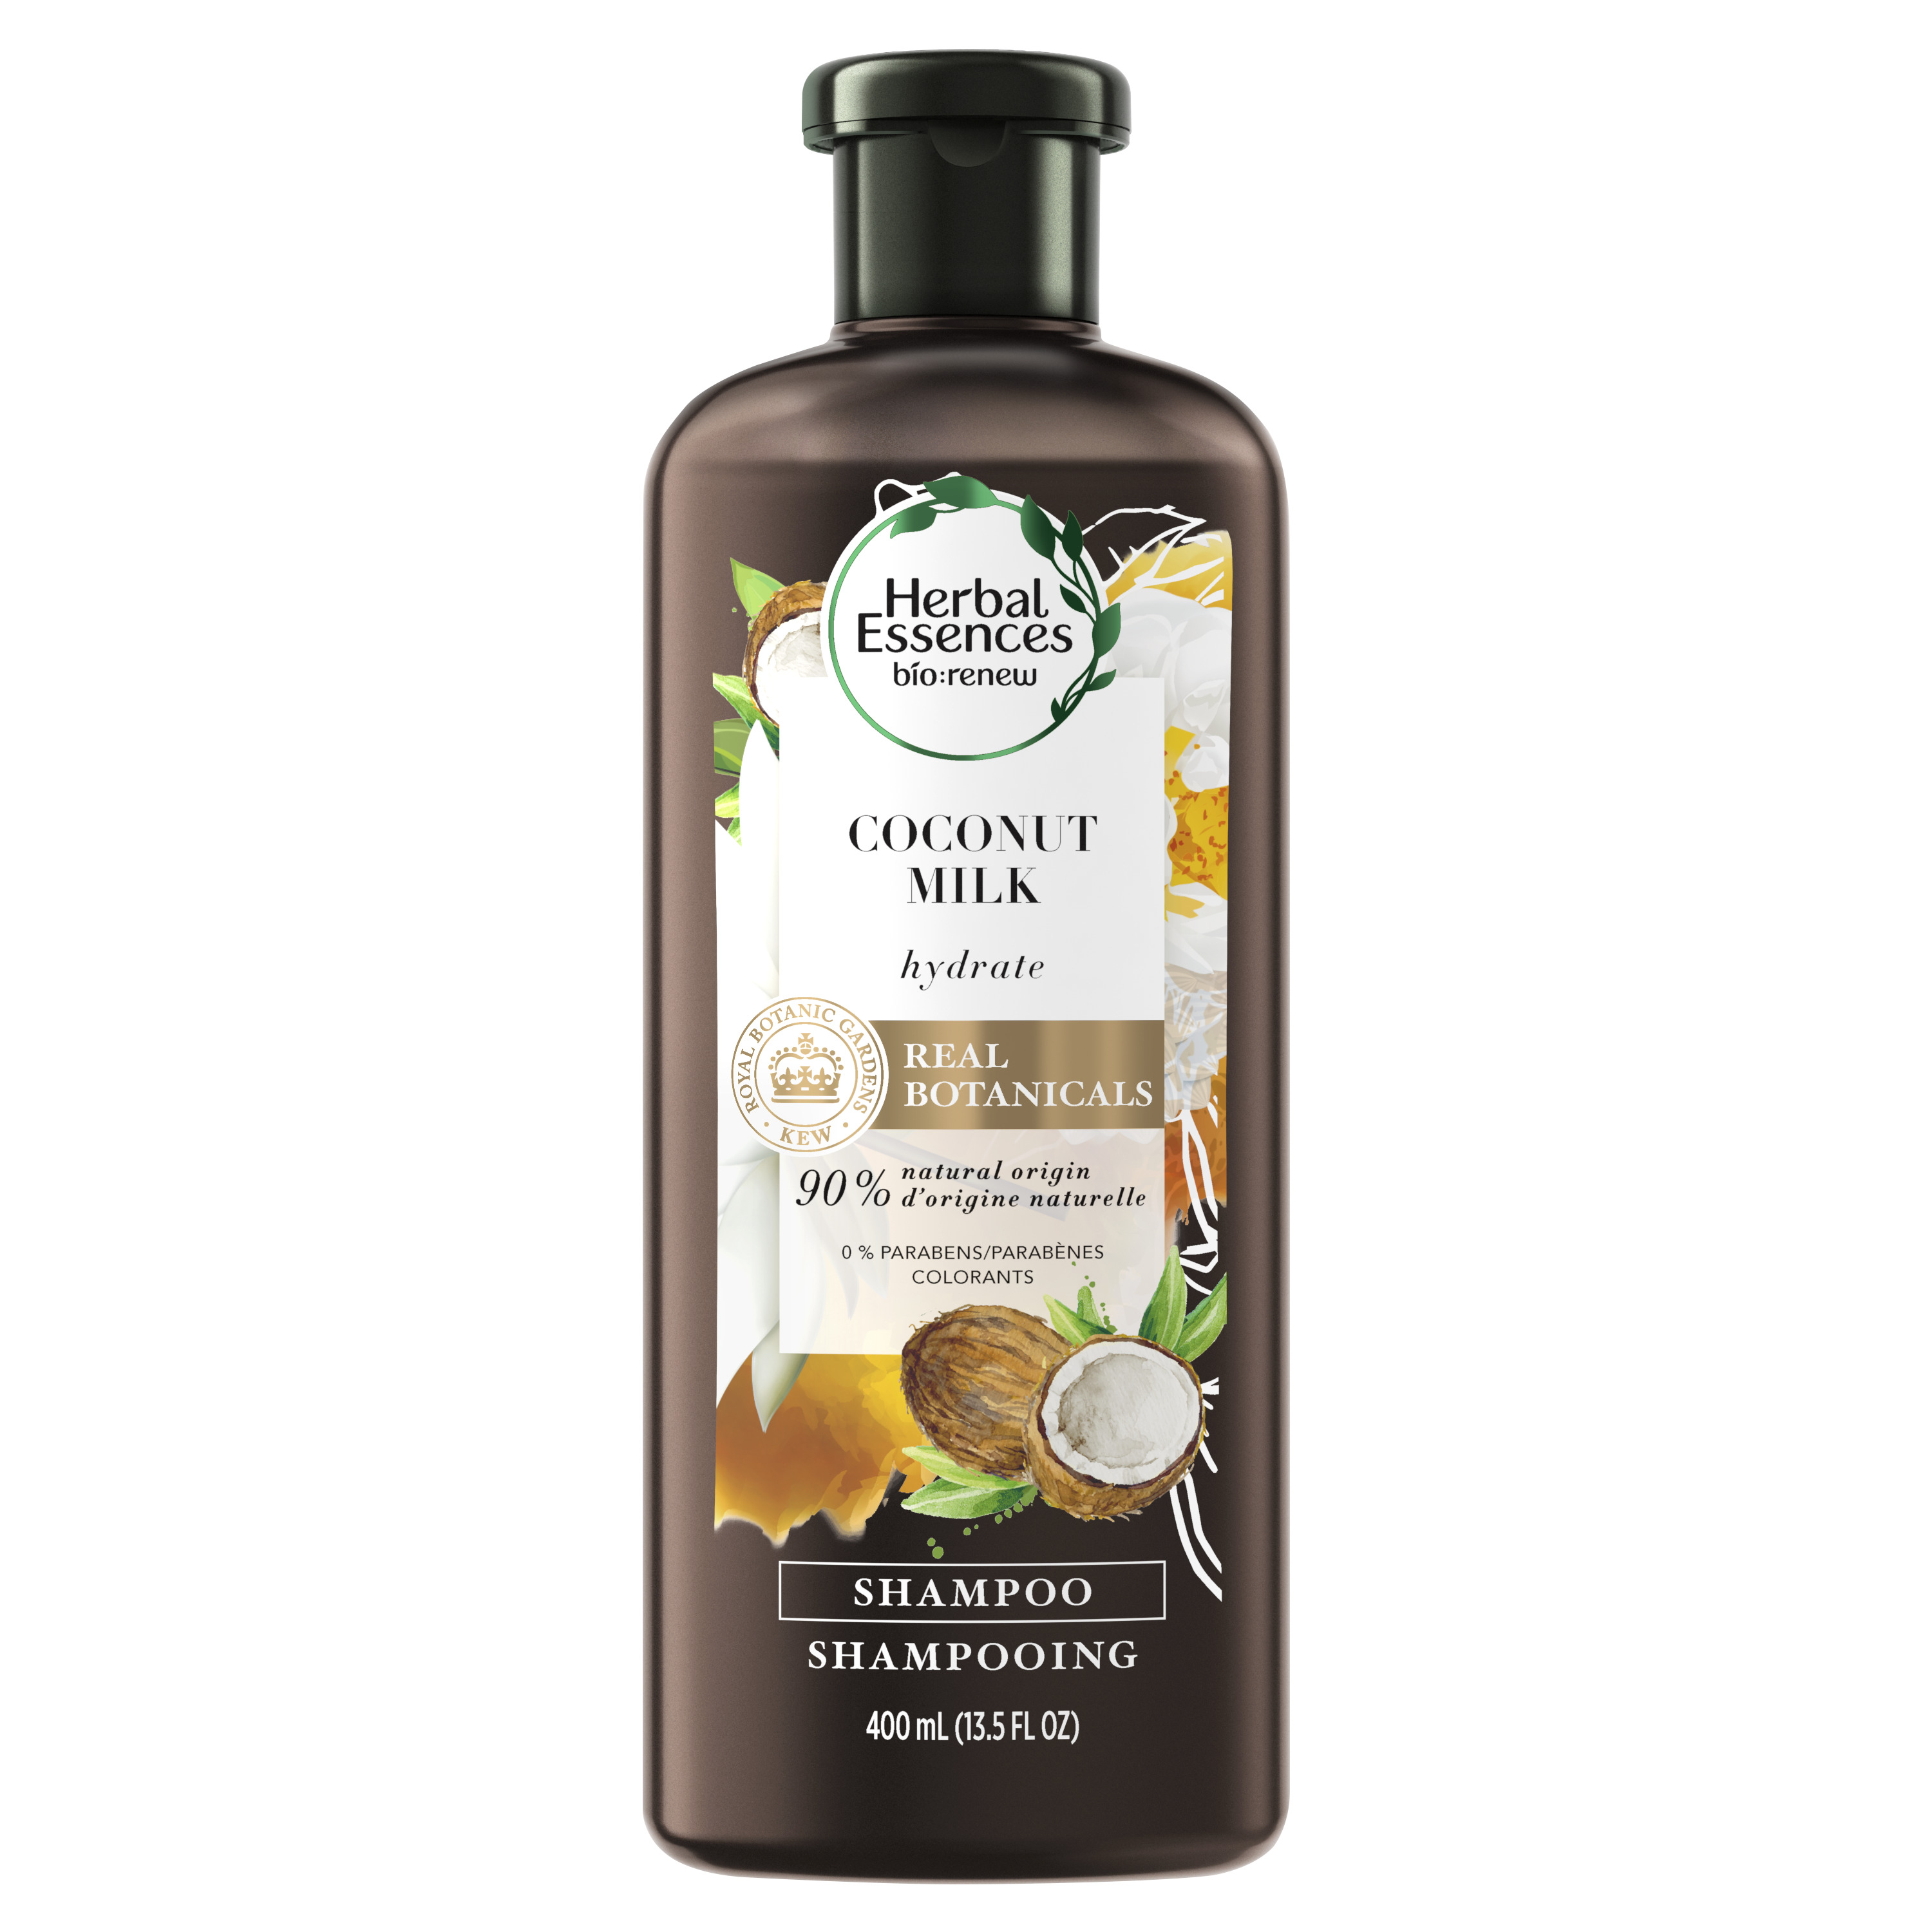 Herbal Essences bio:renew Coconut Milk Hydrating Shampoo, 13.5 fl oz